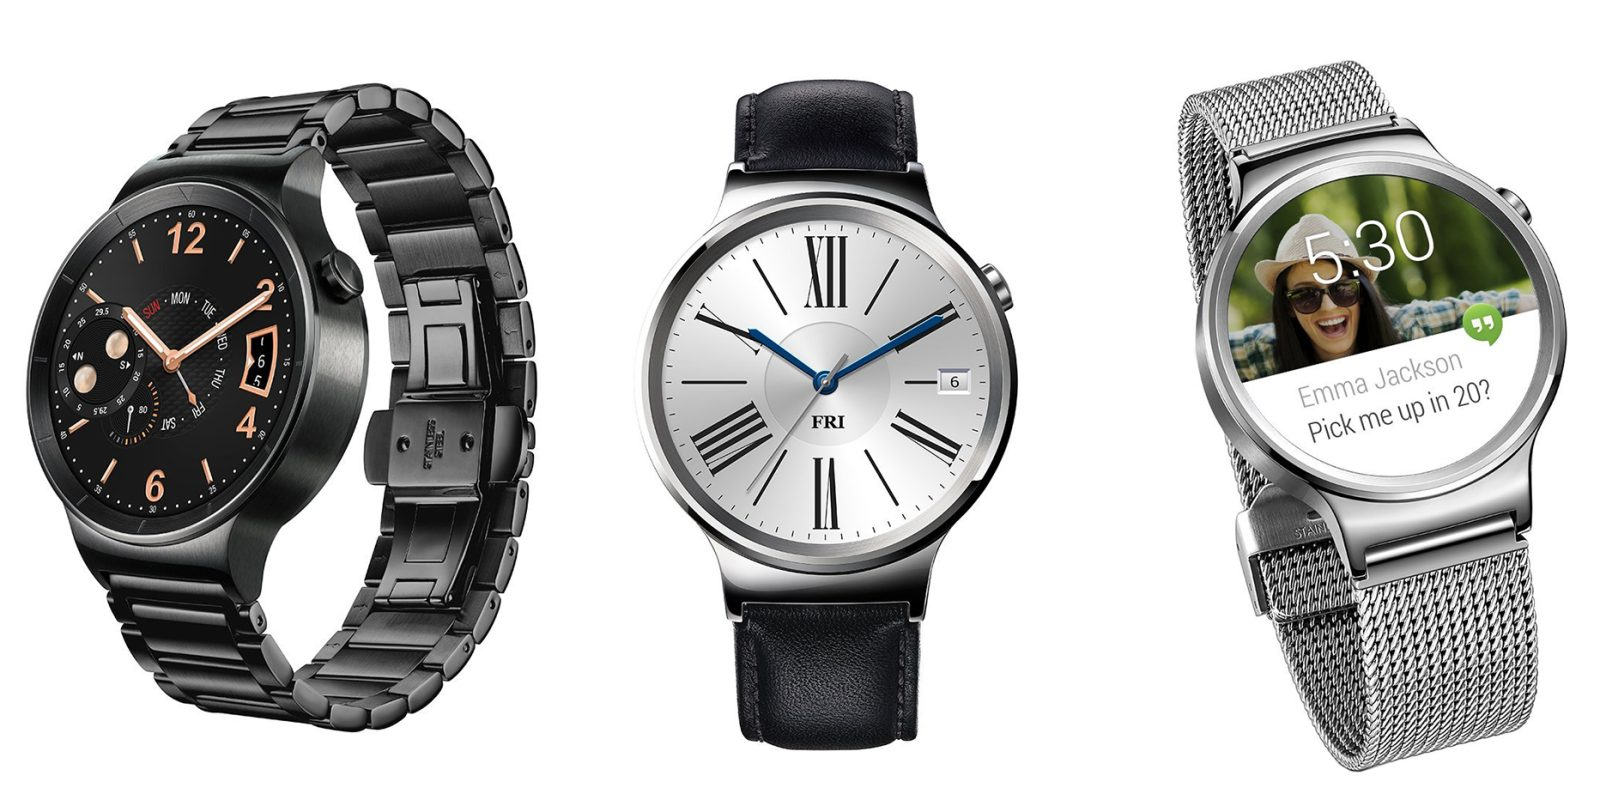 Save $50 on Huawei Watches for iOS/Android, prices start at